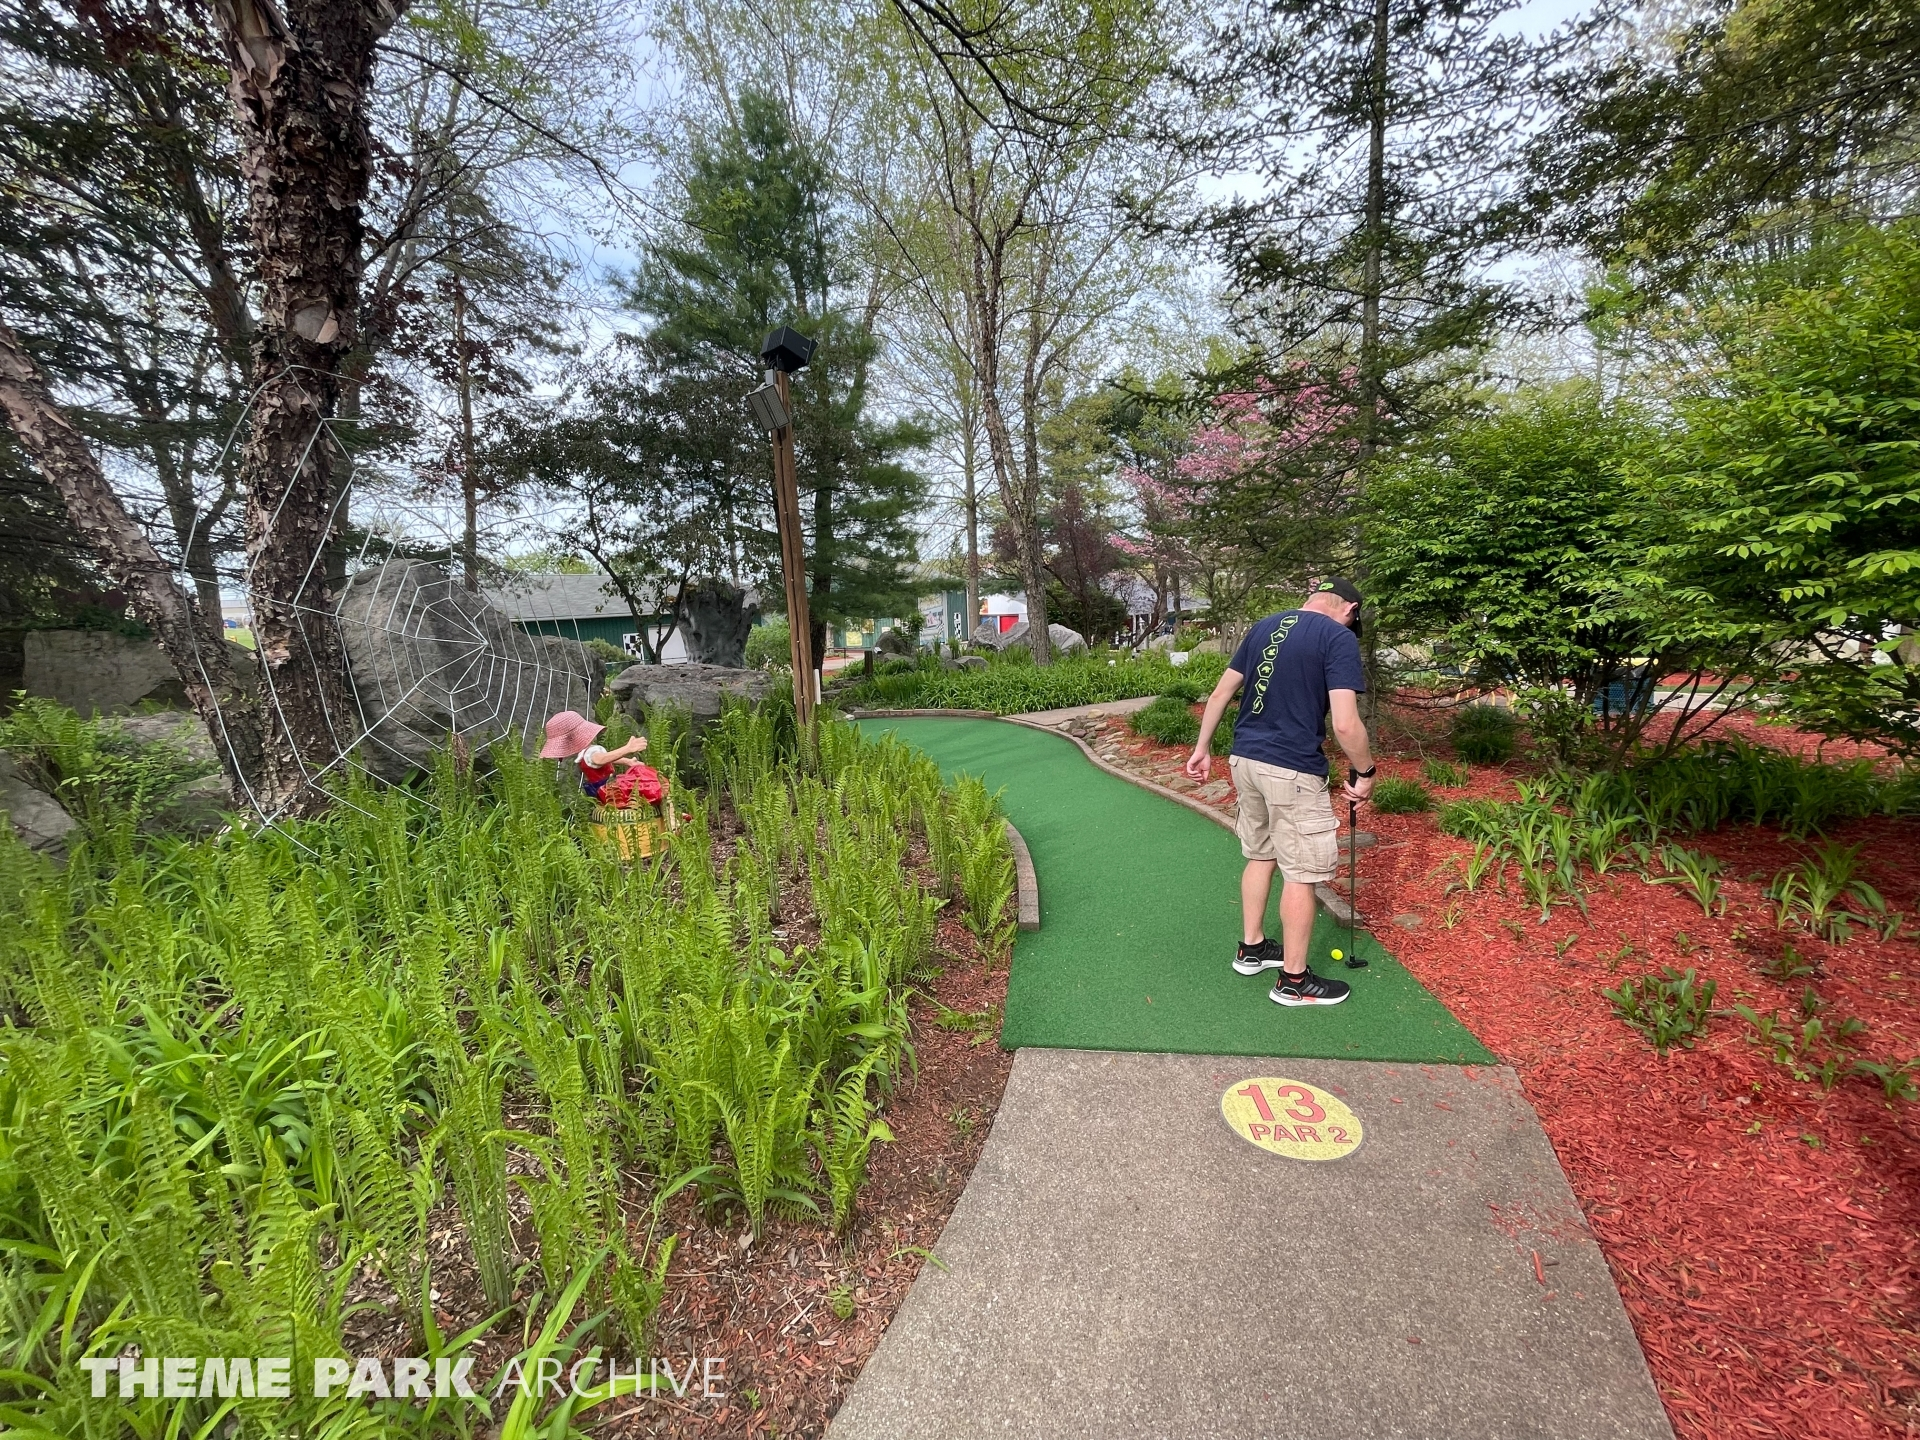 Adventure Mini Golf at Sluggers & Putters Amusement Park